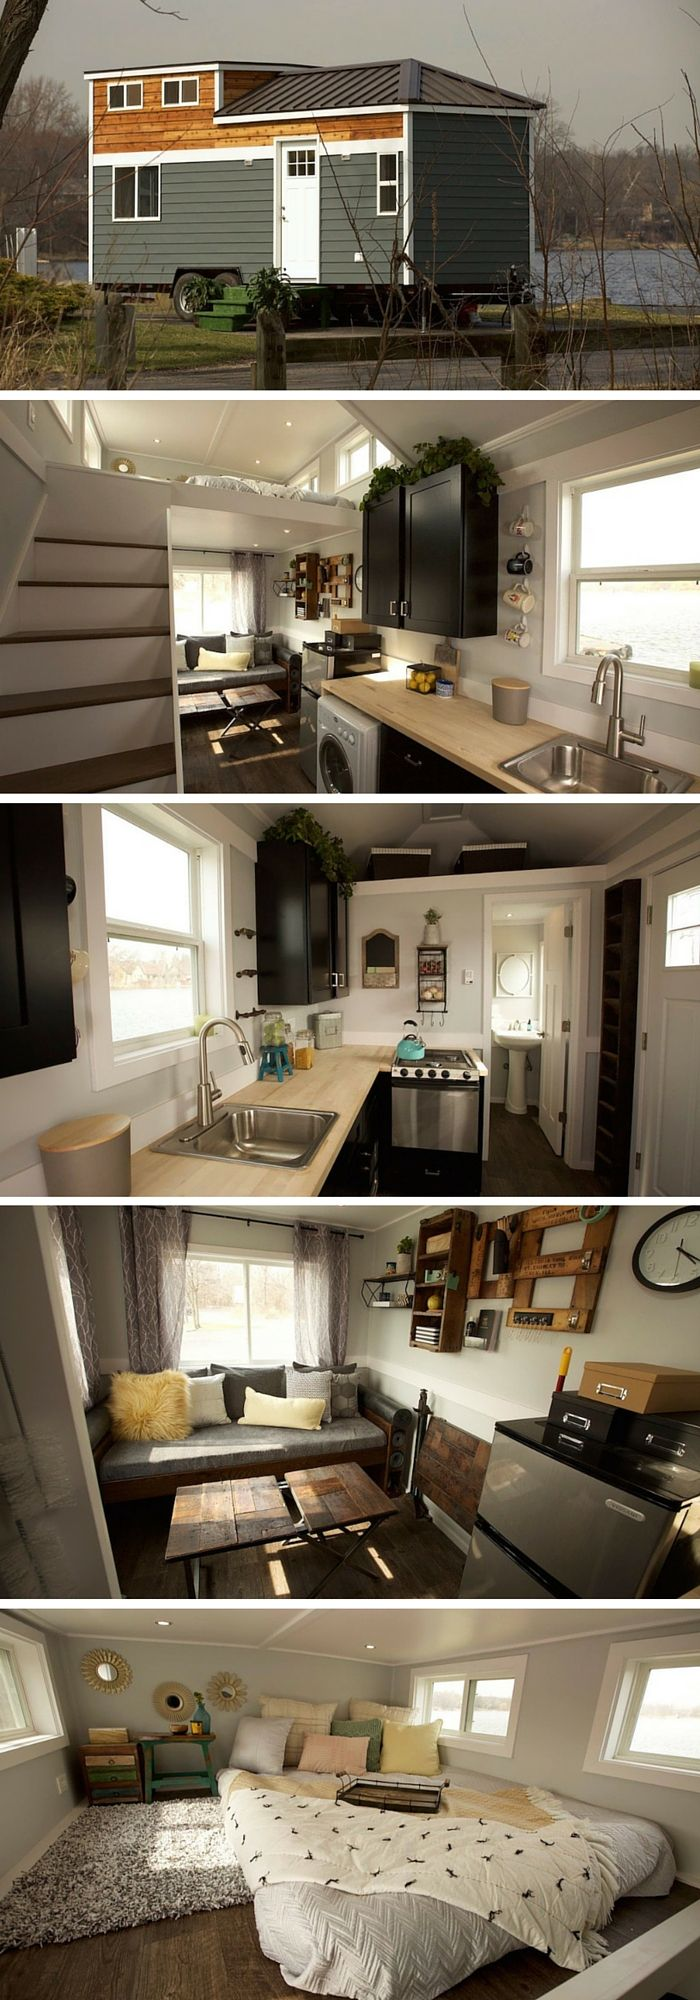 20 best Tiny homes images on Pinterest Tiny living Small homes